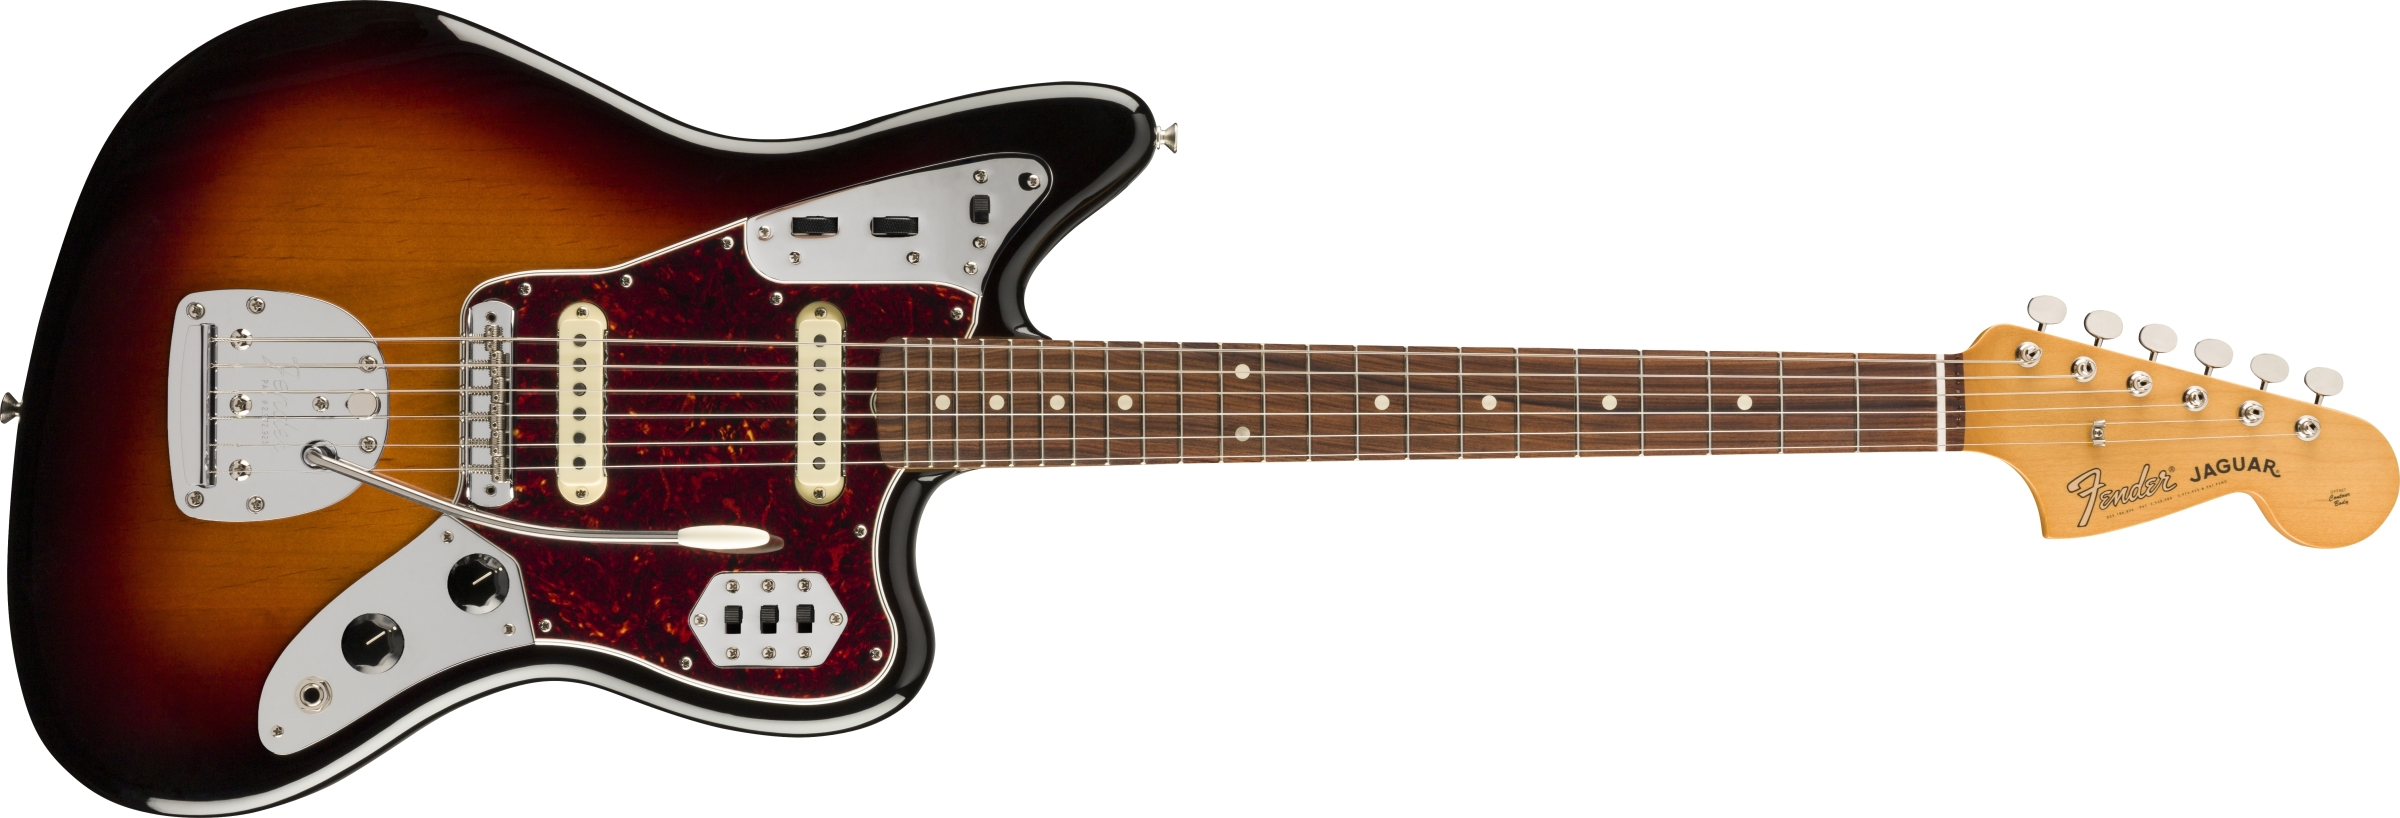 Wiring Diagram For Mexican Fender Stratocaster